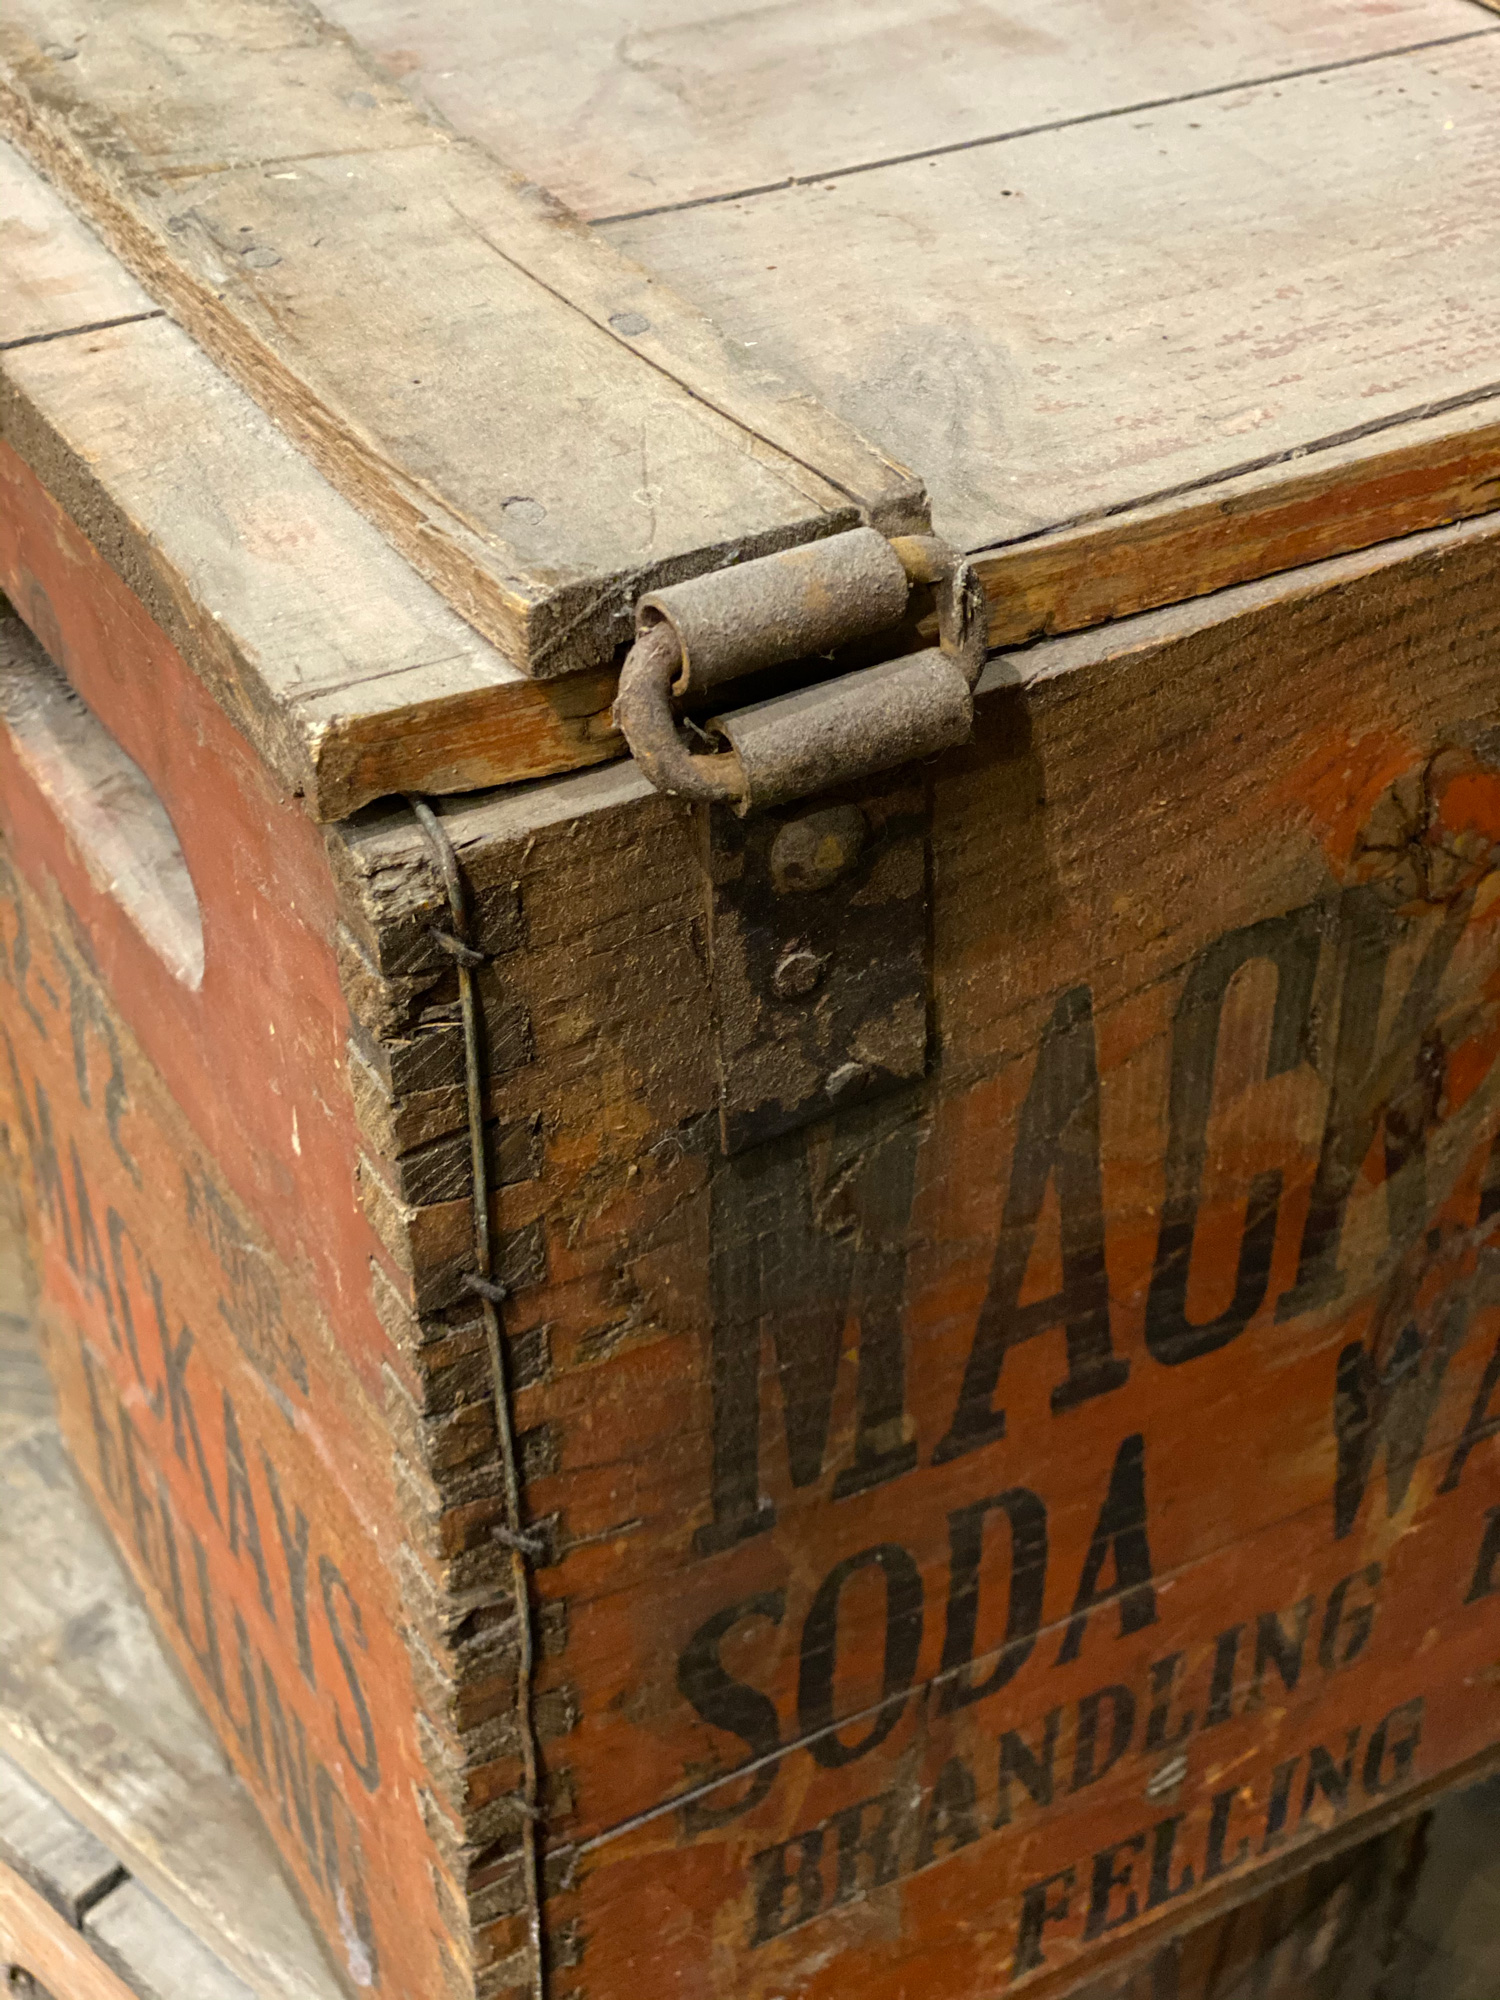 Rusty hinge on reclaimed soda box crate